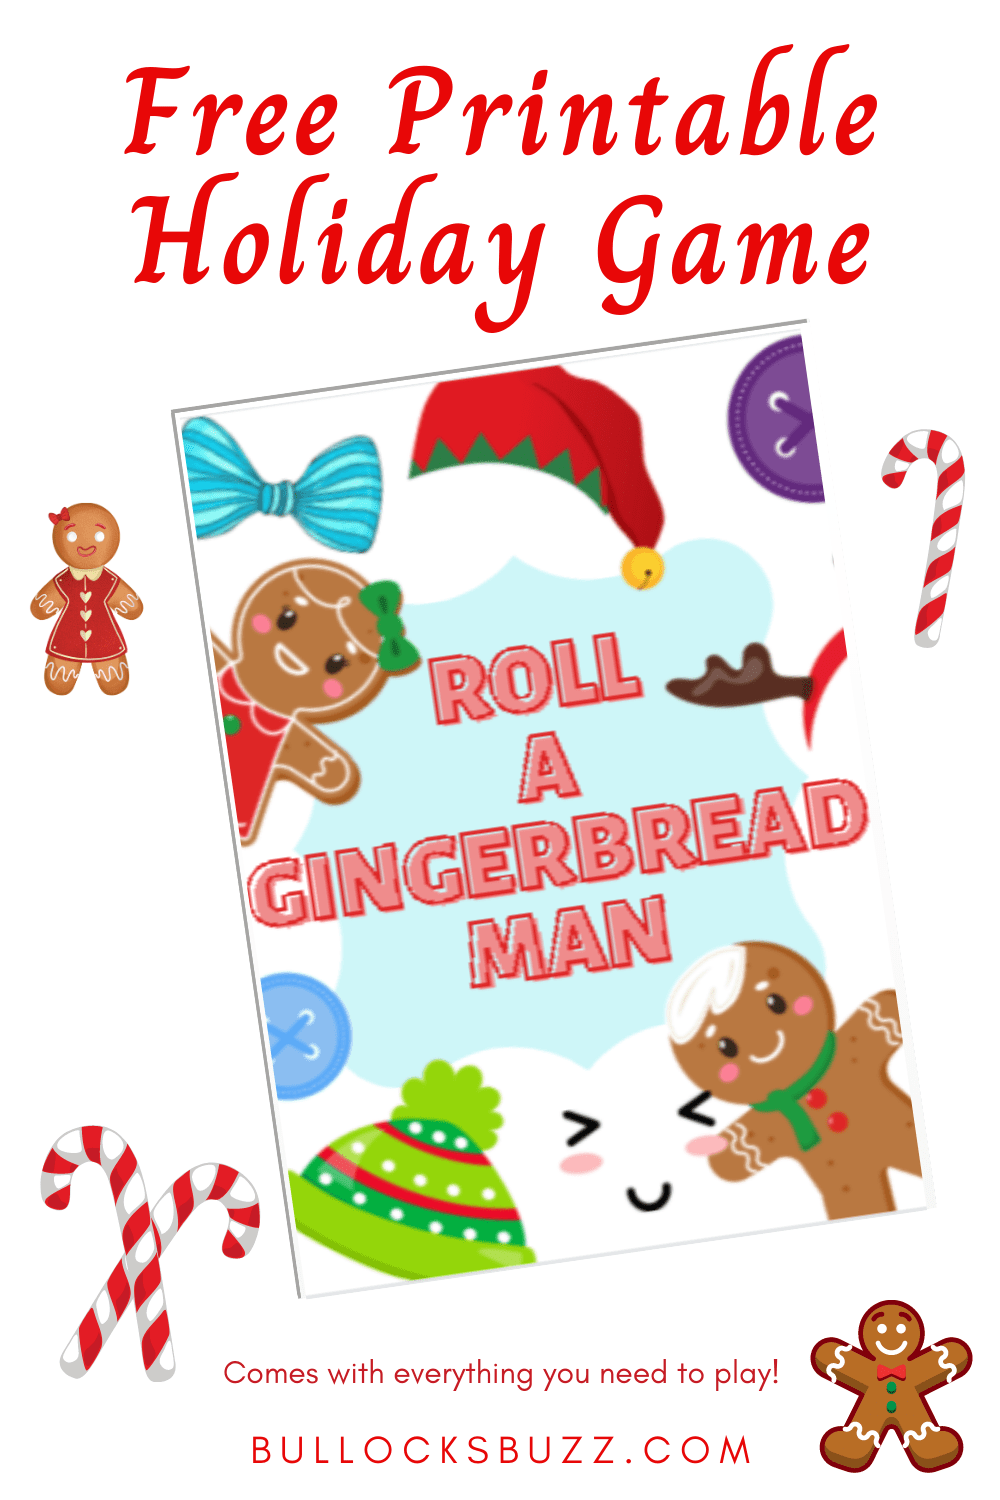 Spread the cheer and fun with this free printable Christmas game, Roll a Gingerbread Man/ This festive game is sure to put everyone in the holiday spirit while you wait for Santa to show up!